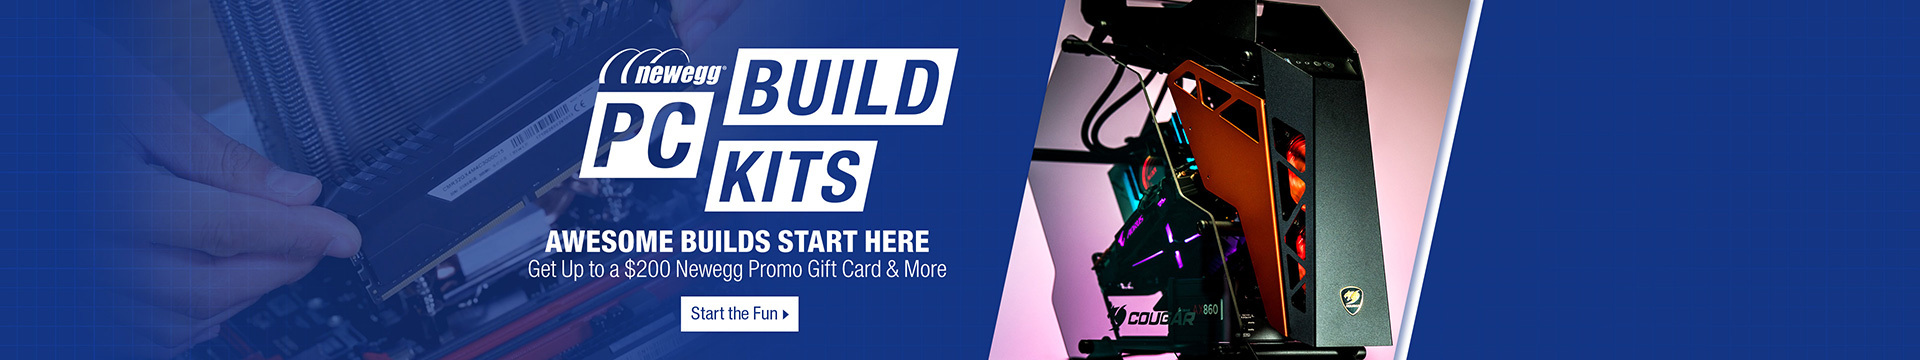 PC BUILD KITS